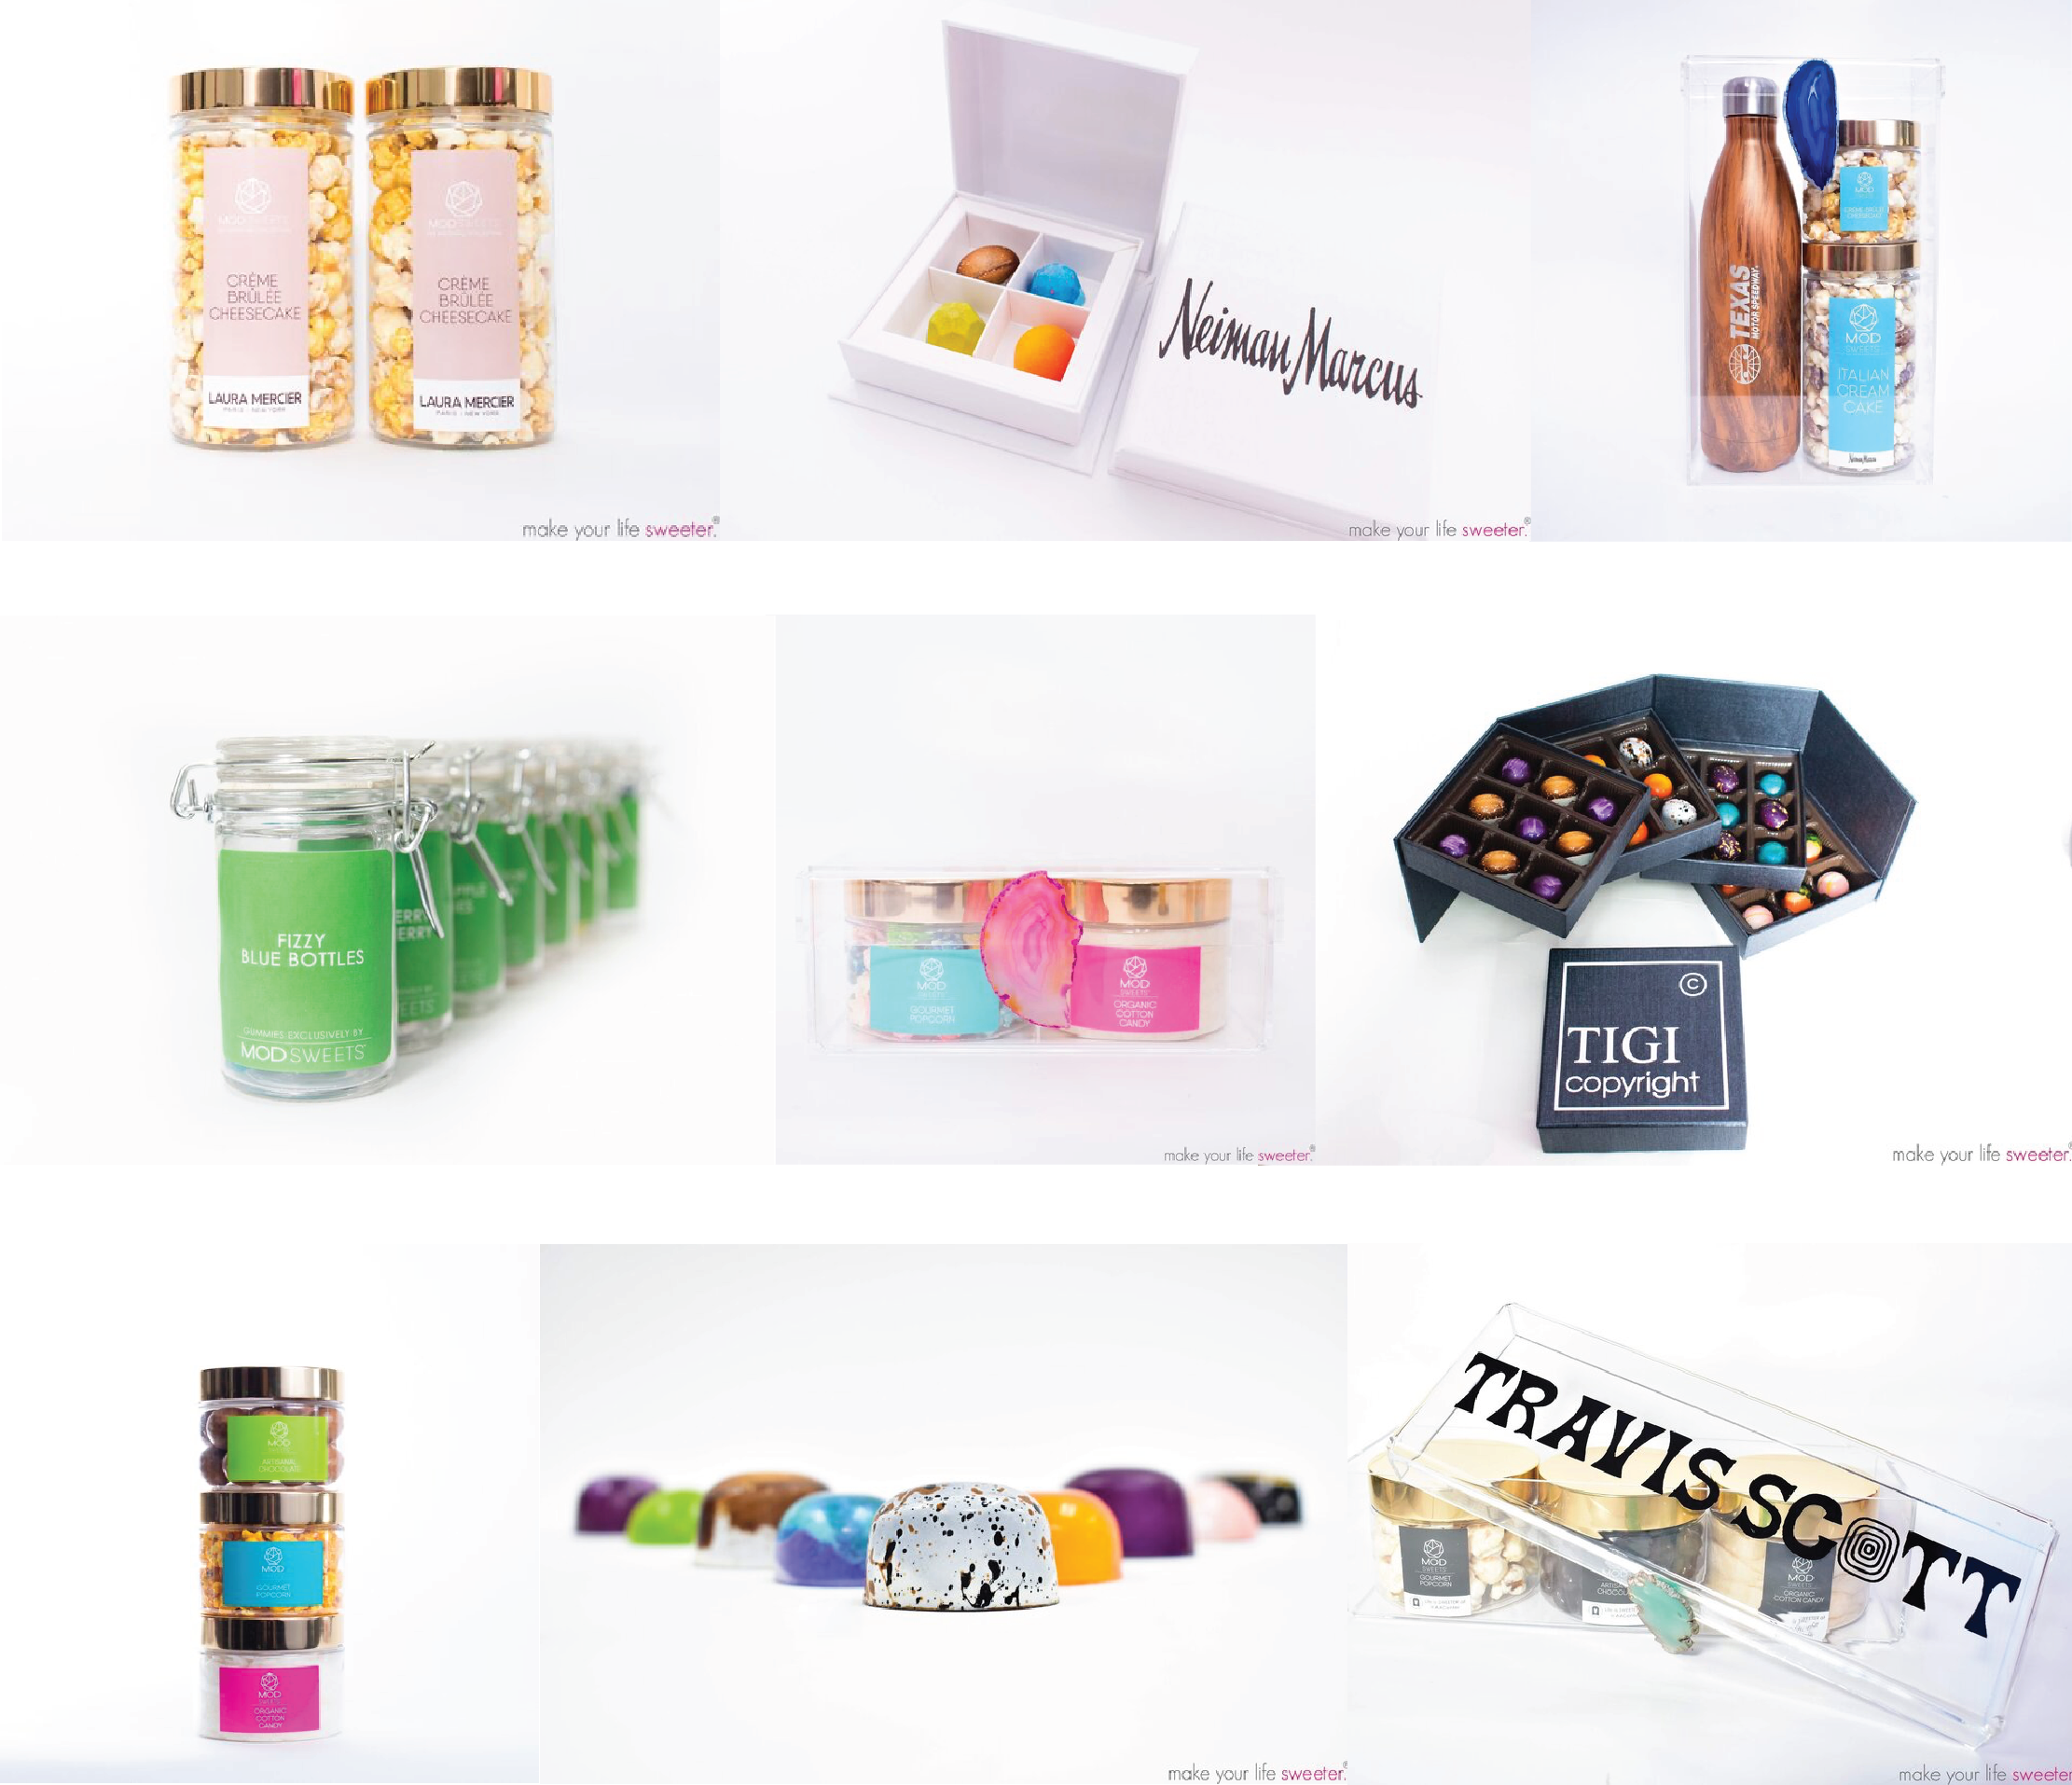 modsweets-banner-square-01.png